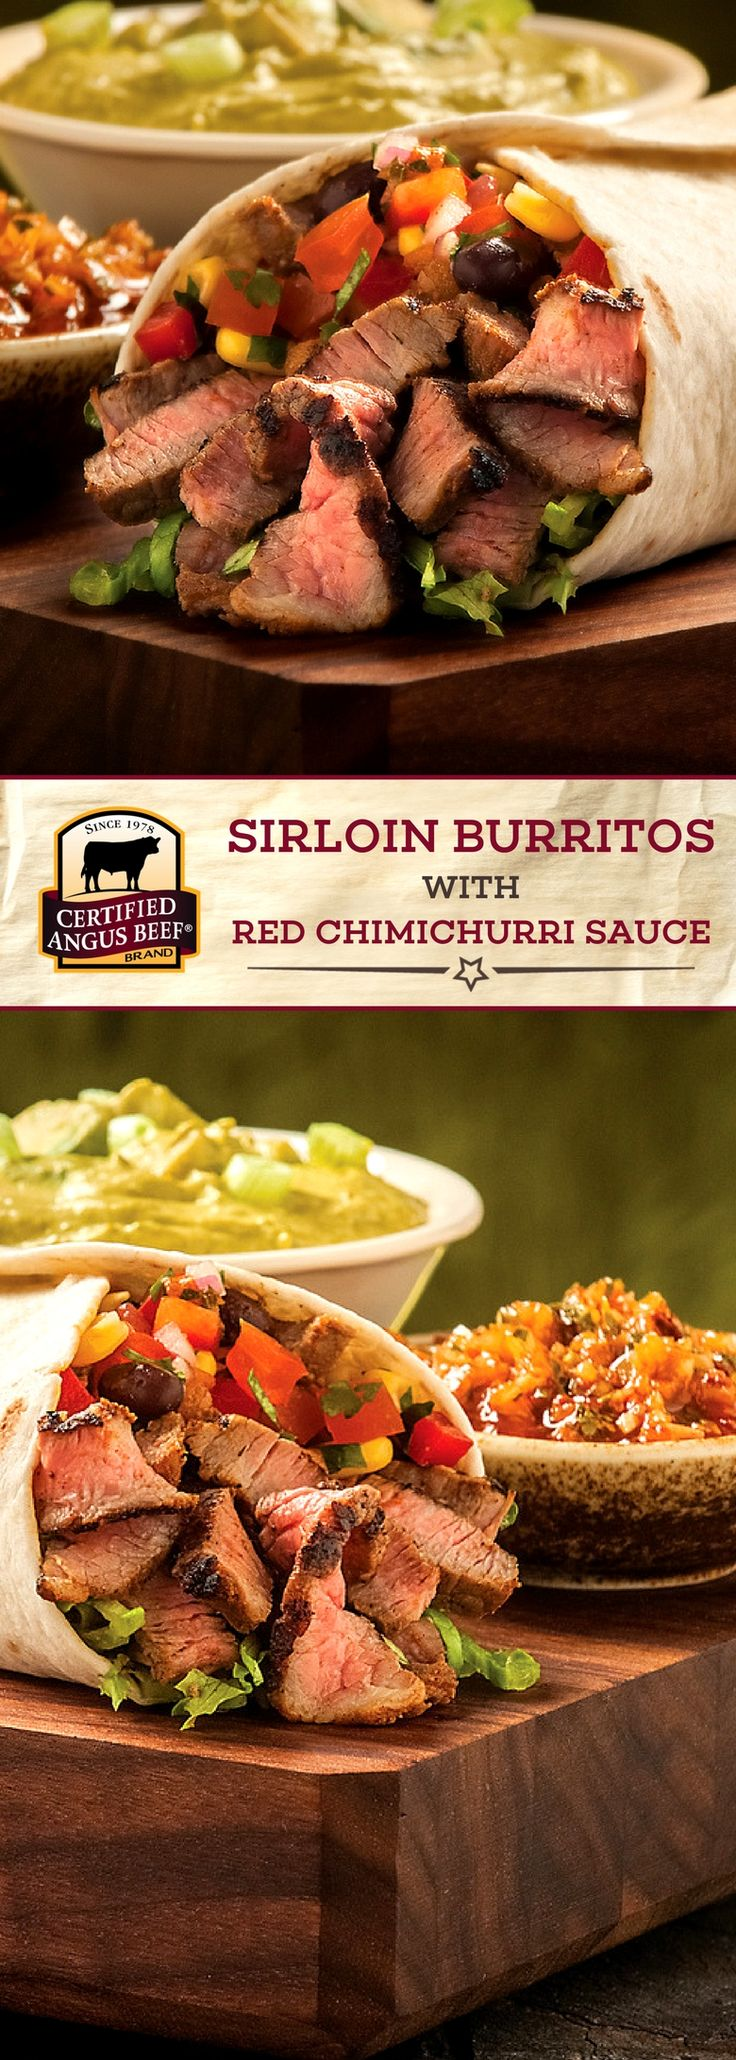 Certified Angus Beef®️ brand Sirloin Burritos with Red Chimichurri Sauce use the best sirloin or skirt steak and a blend of tasty spices for a DELICIOUS burrito recipe! Fresh cilantro, smoked paprika, and red pepper flakes add so much depth to this BEEF recipe. Top with beans, sour cream, shredded chees and guacamole for an IRRESISTIBLE dish!  #bestangusbeef #certifiedangusbeef #beefrecipe #easyrecipes #tacotuesday